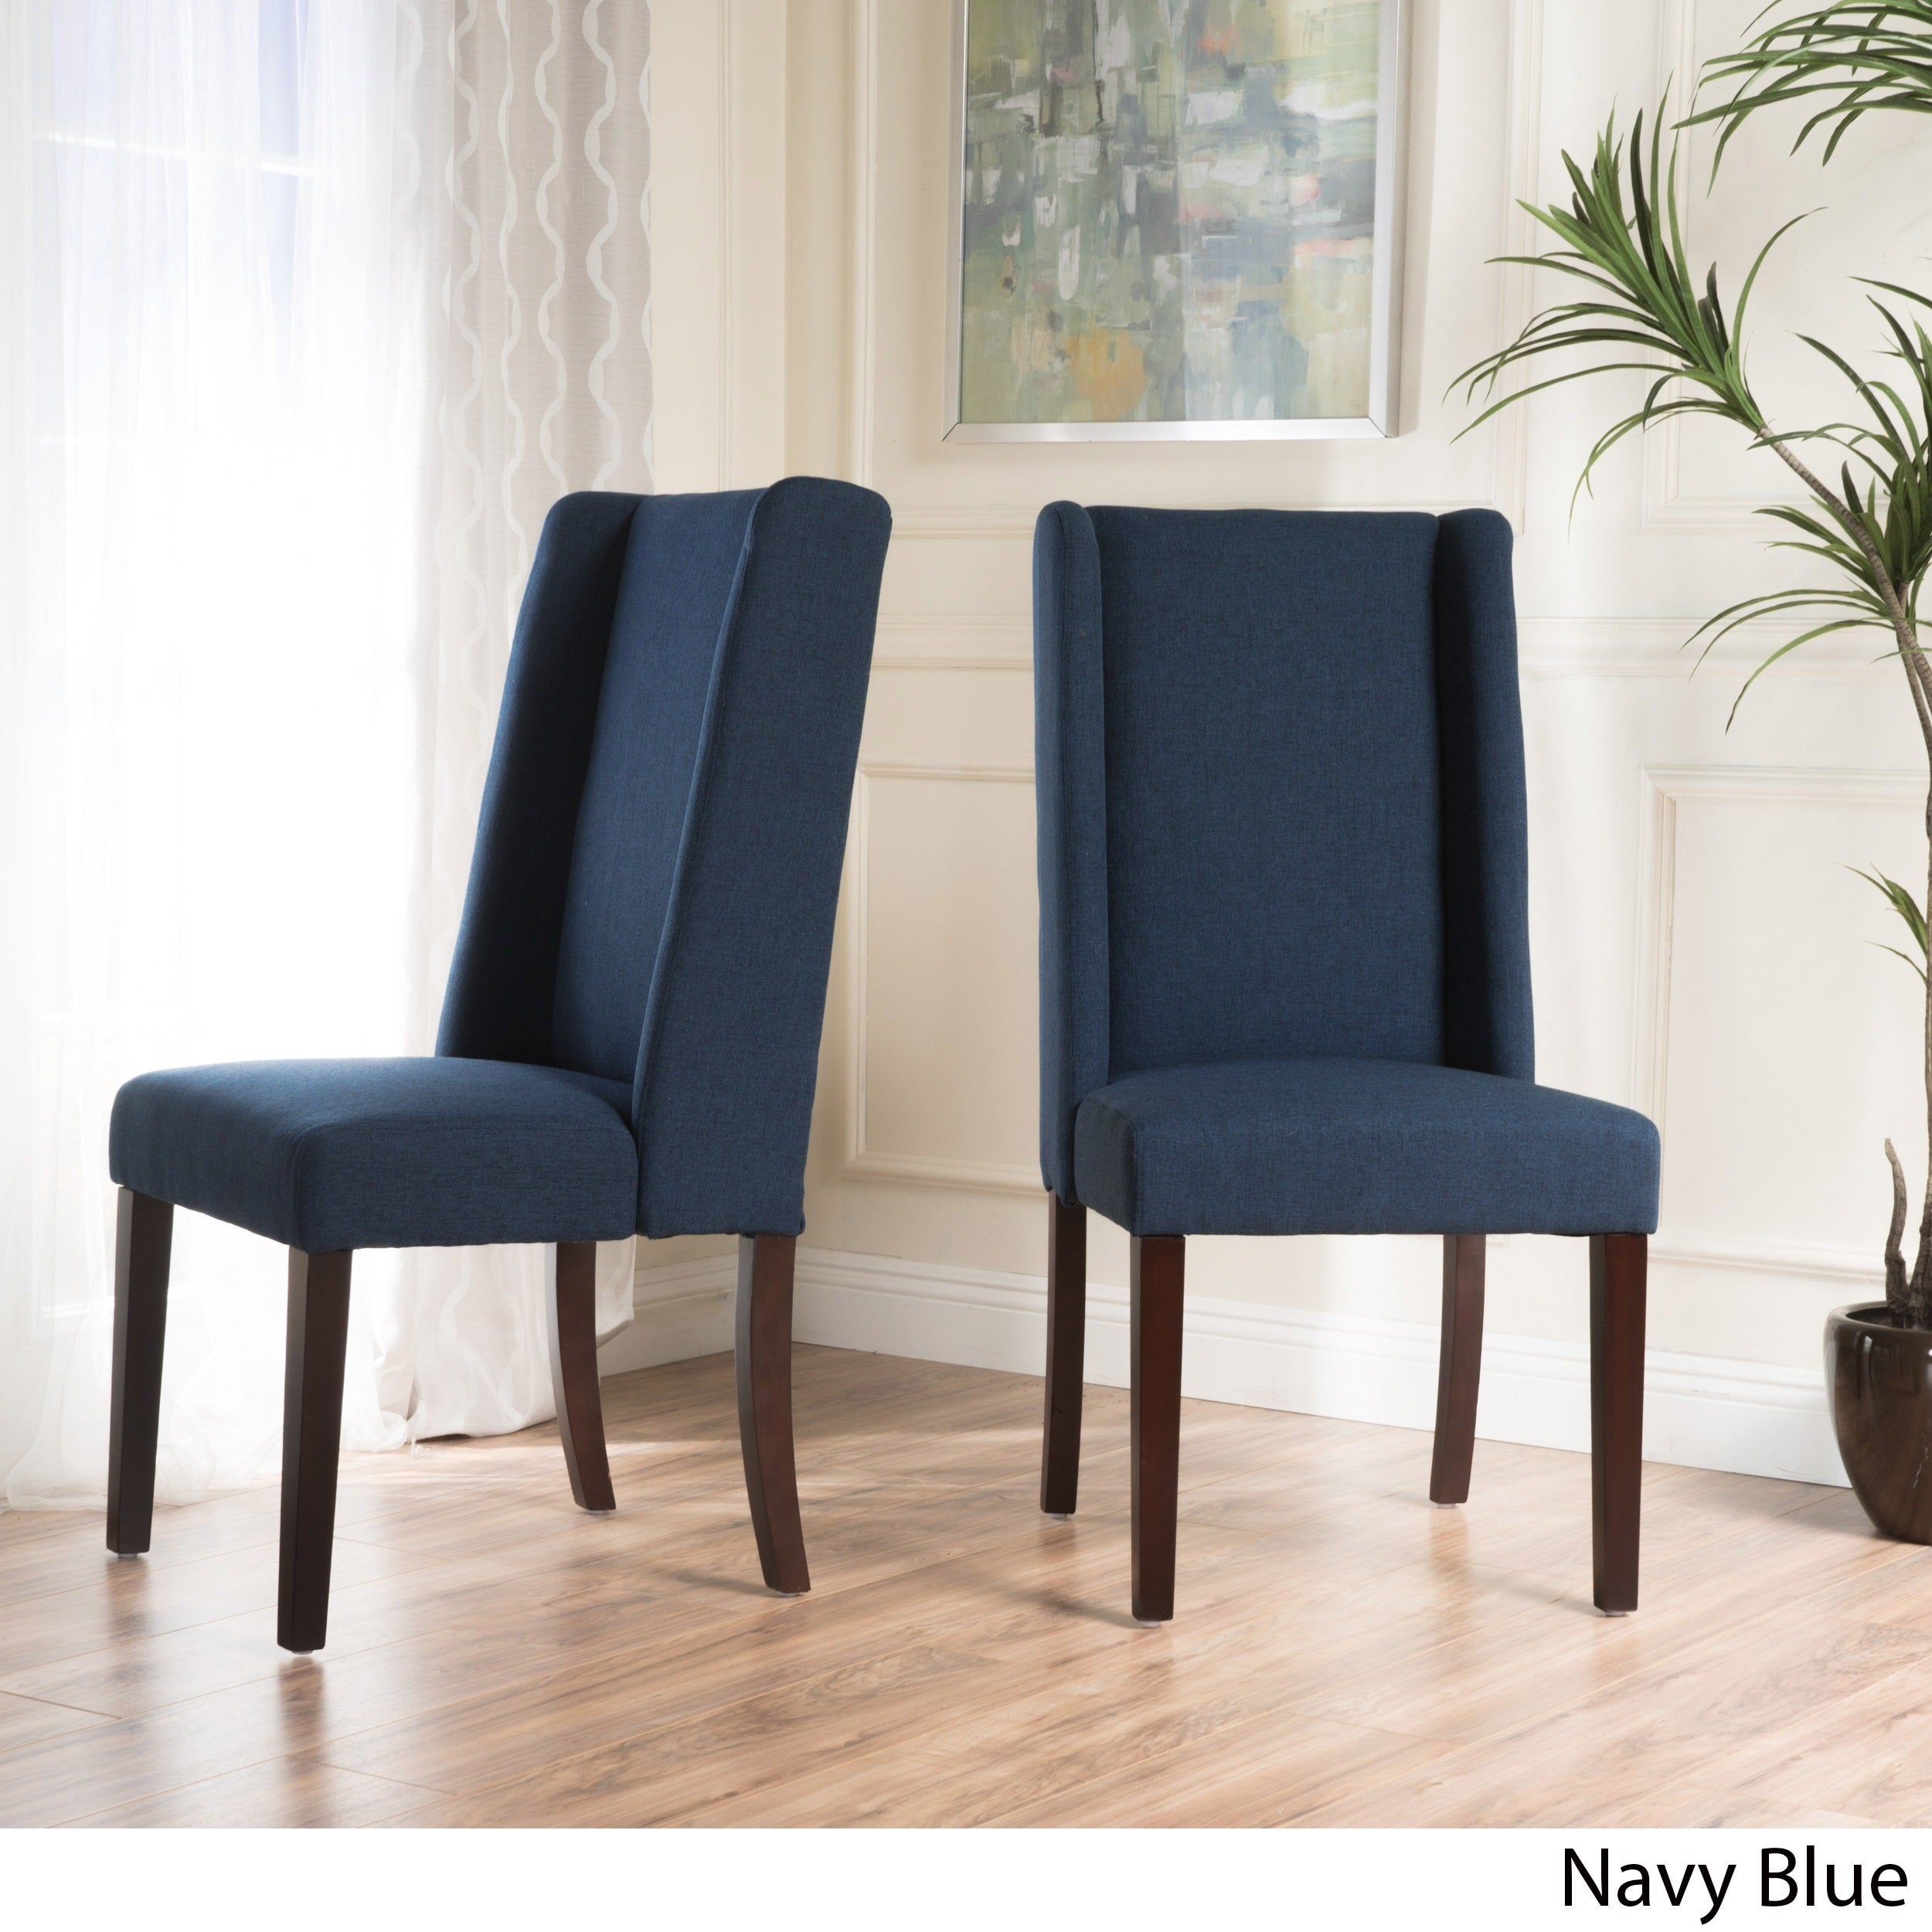 navy blue dining chairs table rorywingbackfabricdiningchairsetof rory wingback fabric dining chair set of 2 by christopher knight